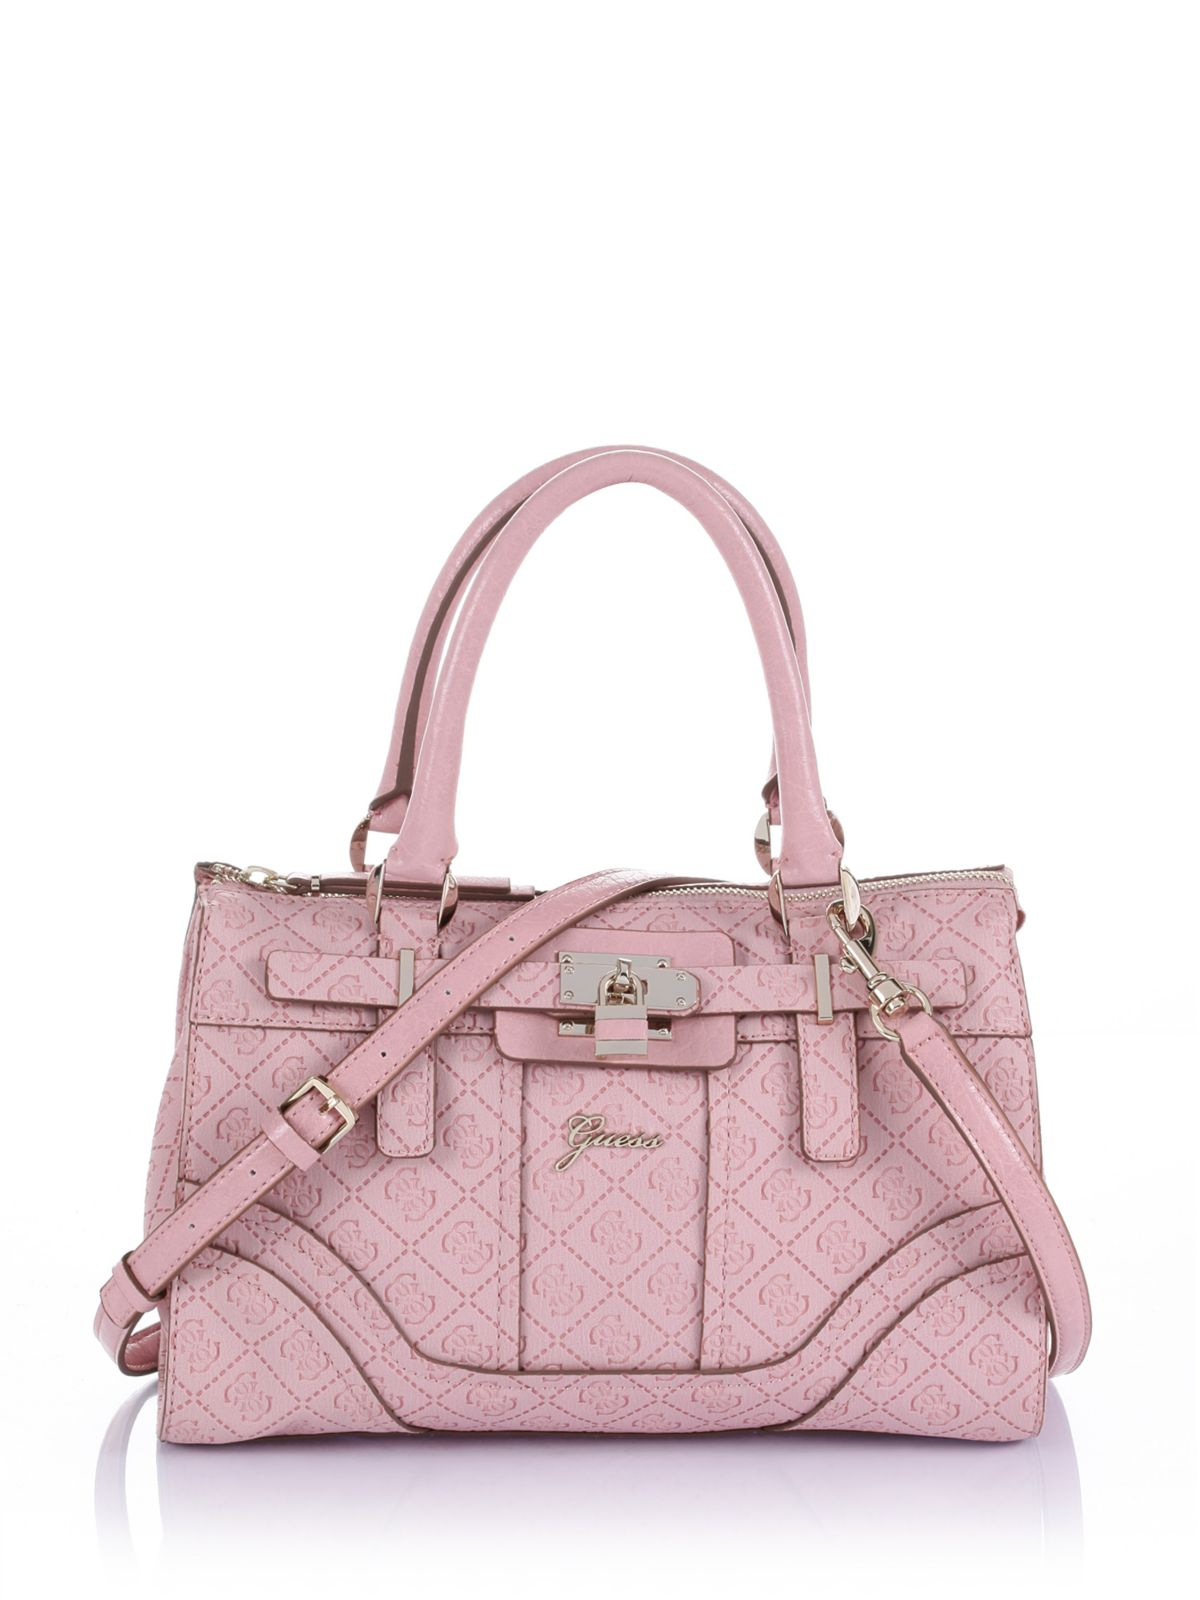 Guess La Vida Logo Small Satchel Bag in Pink | Lyst